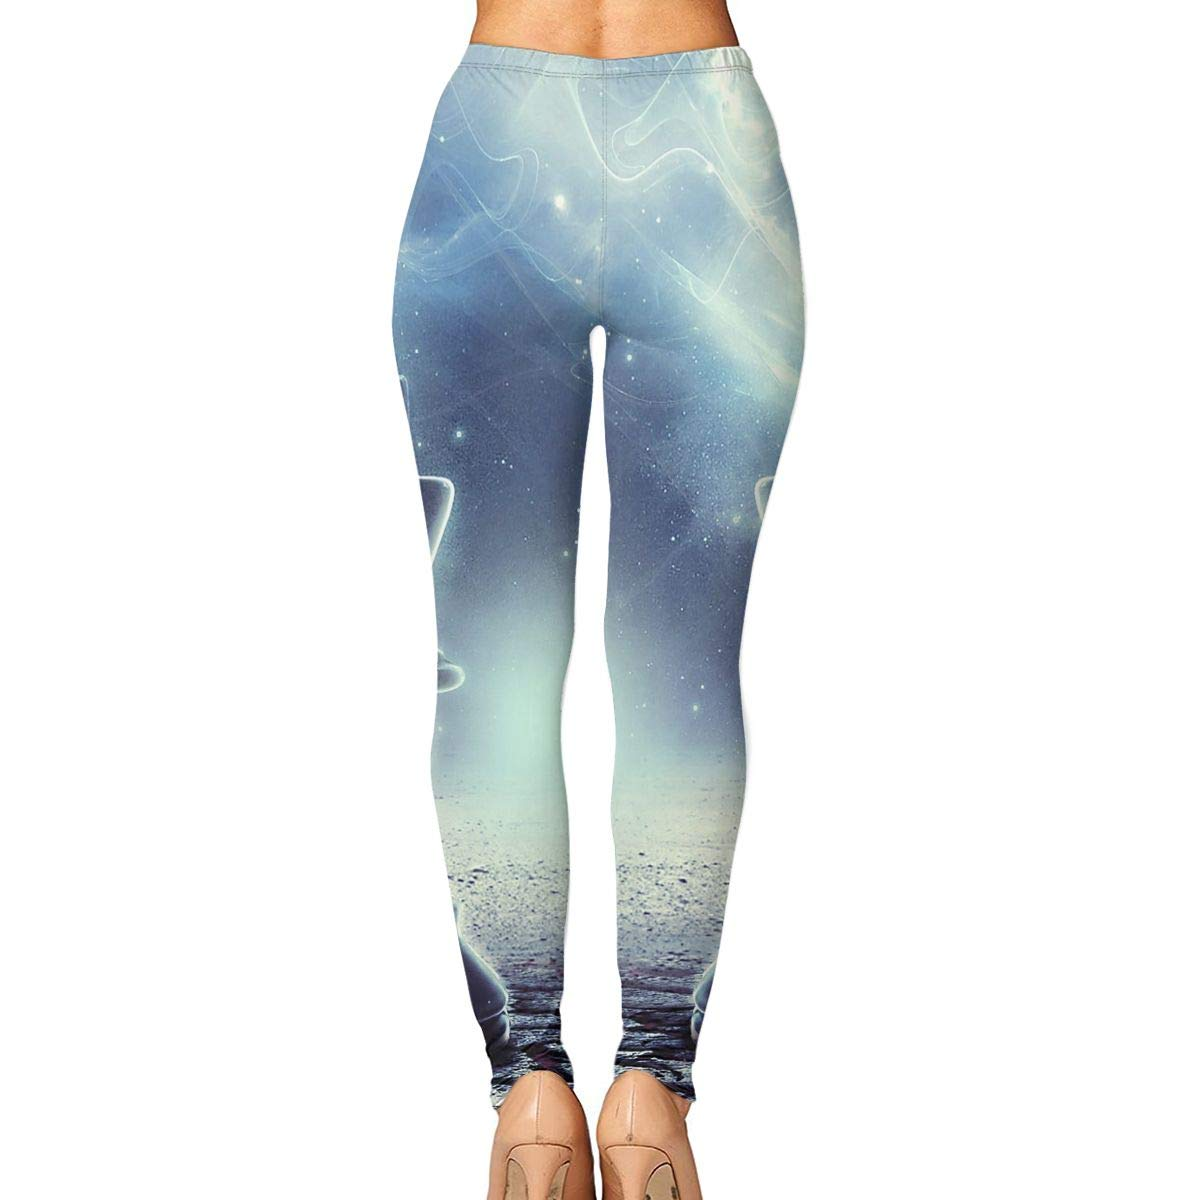 Amazon.com: Cooby Roman Womens Yoga Leggings Pants Chess ...